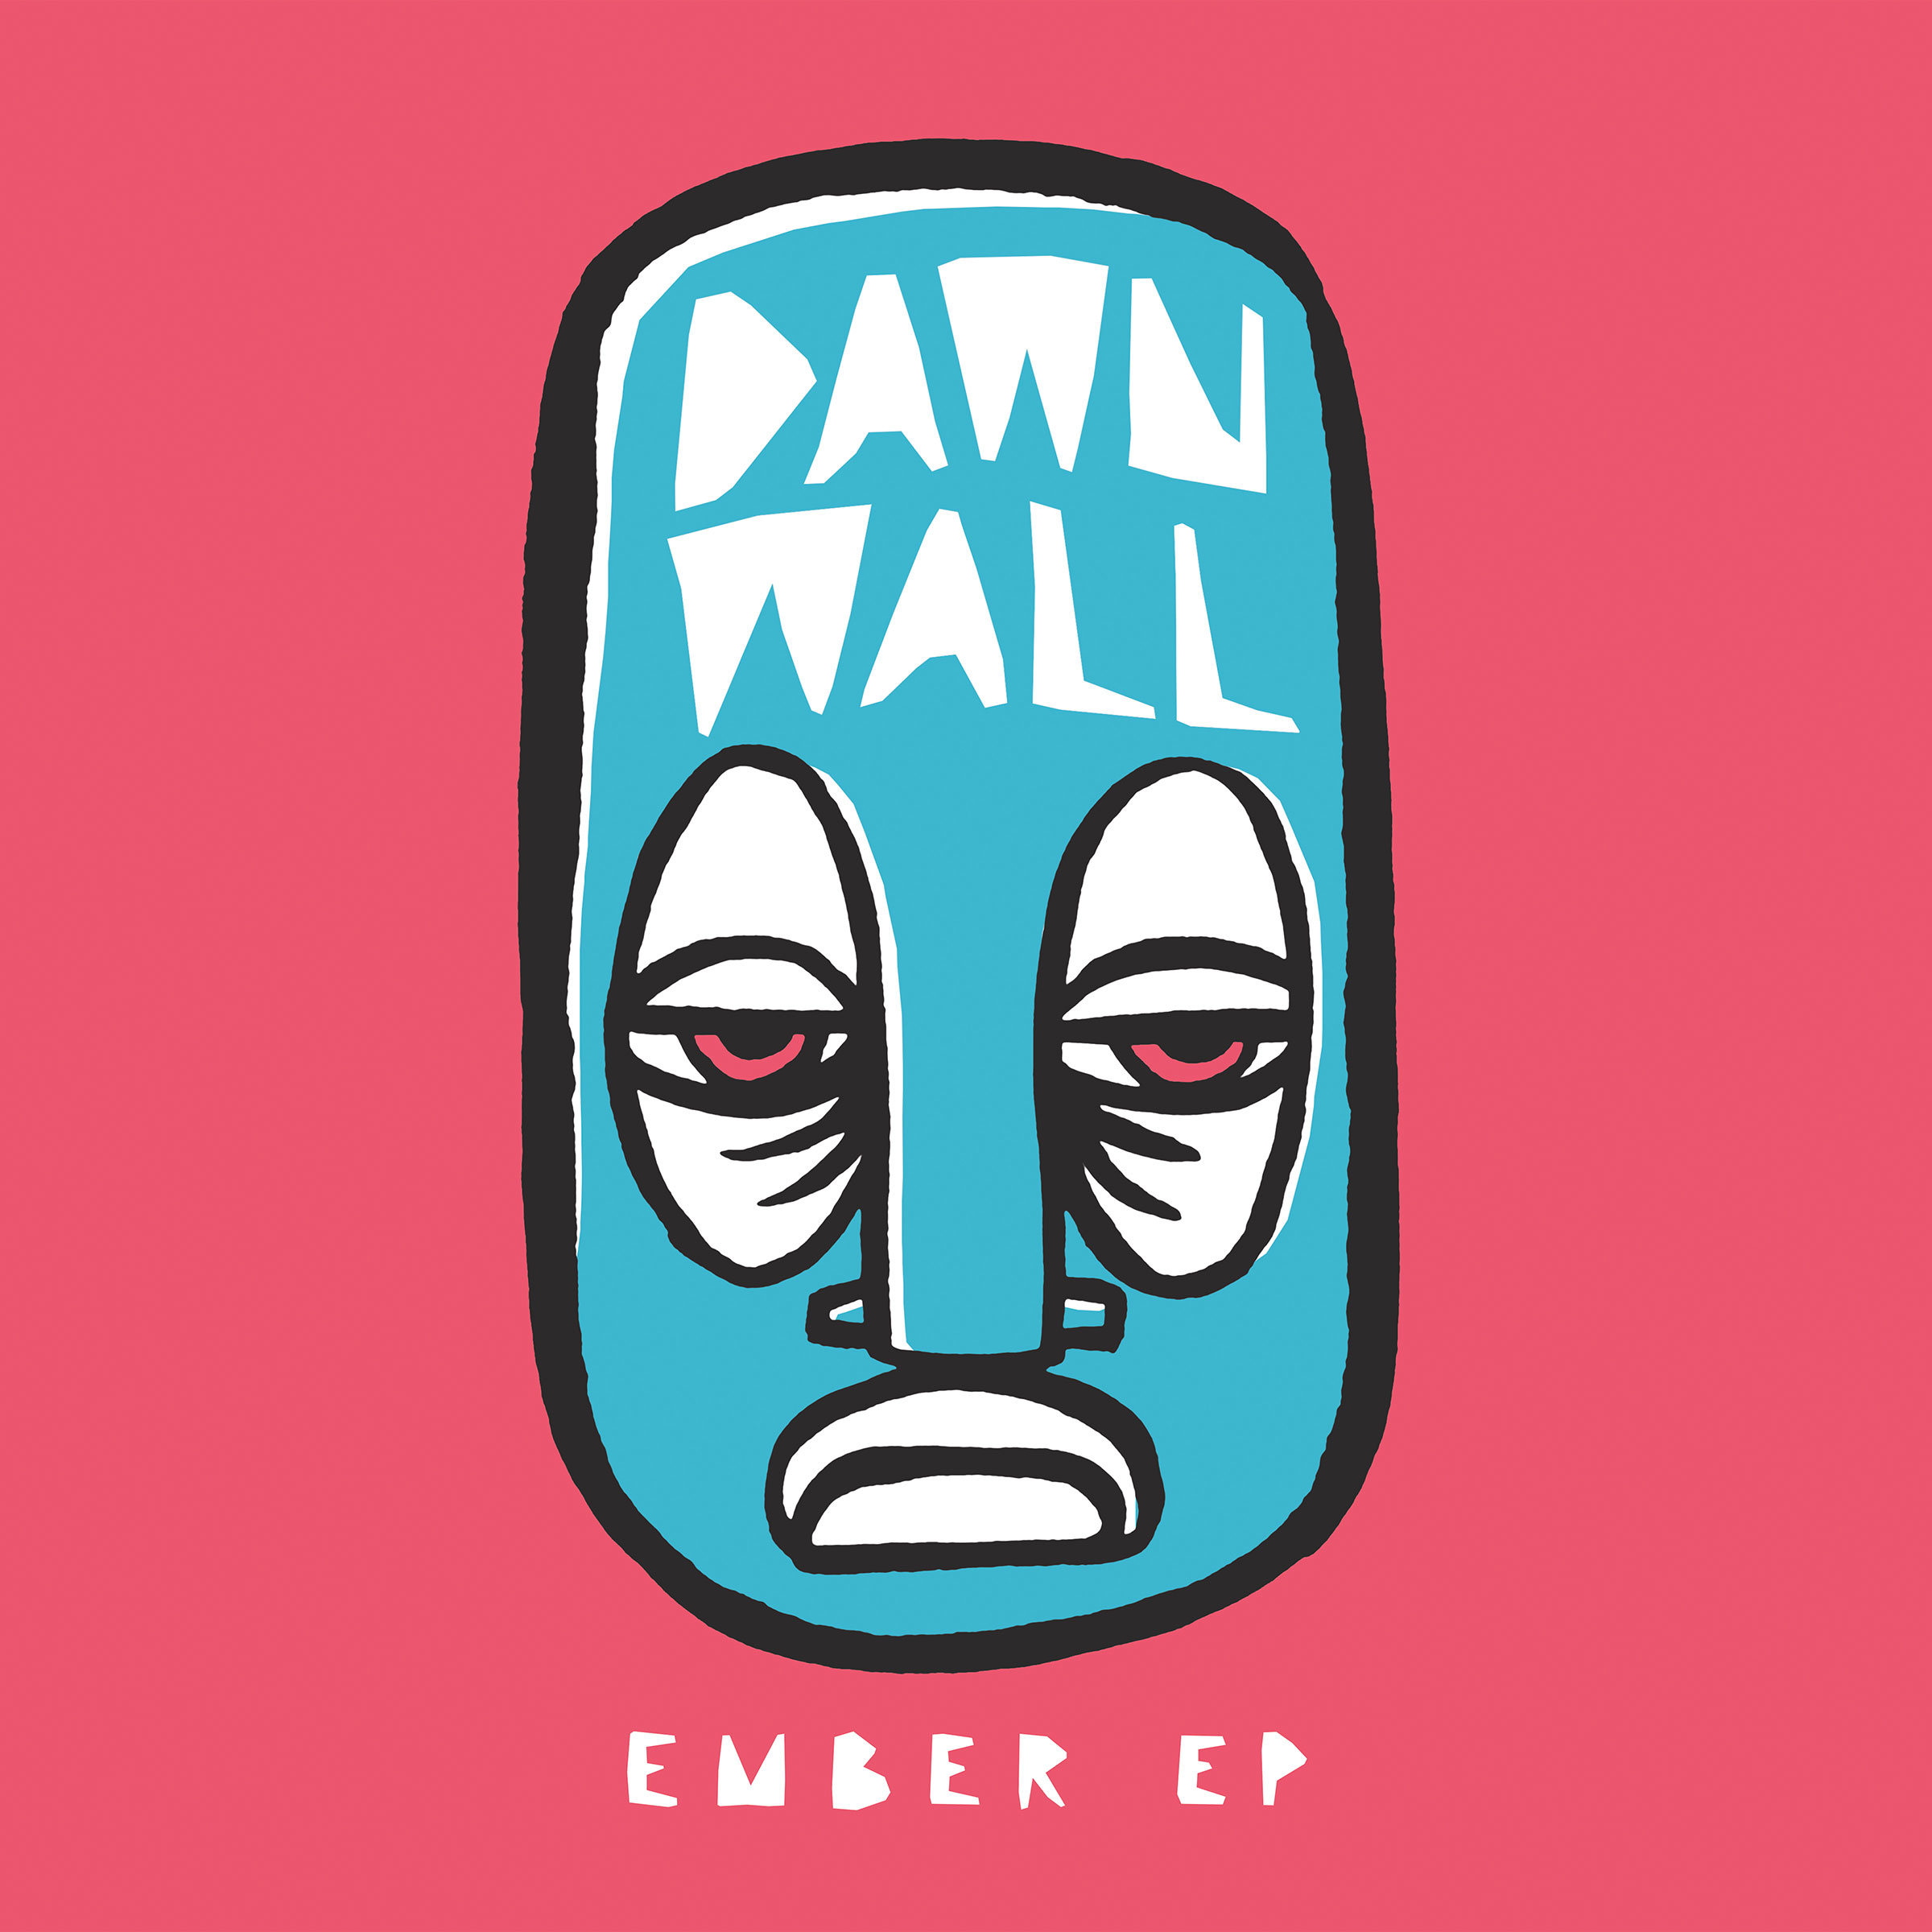 INT034 - Dawn Wall - Ember EP